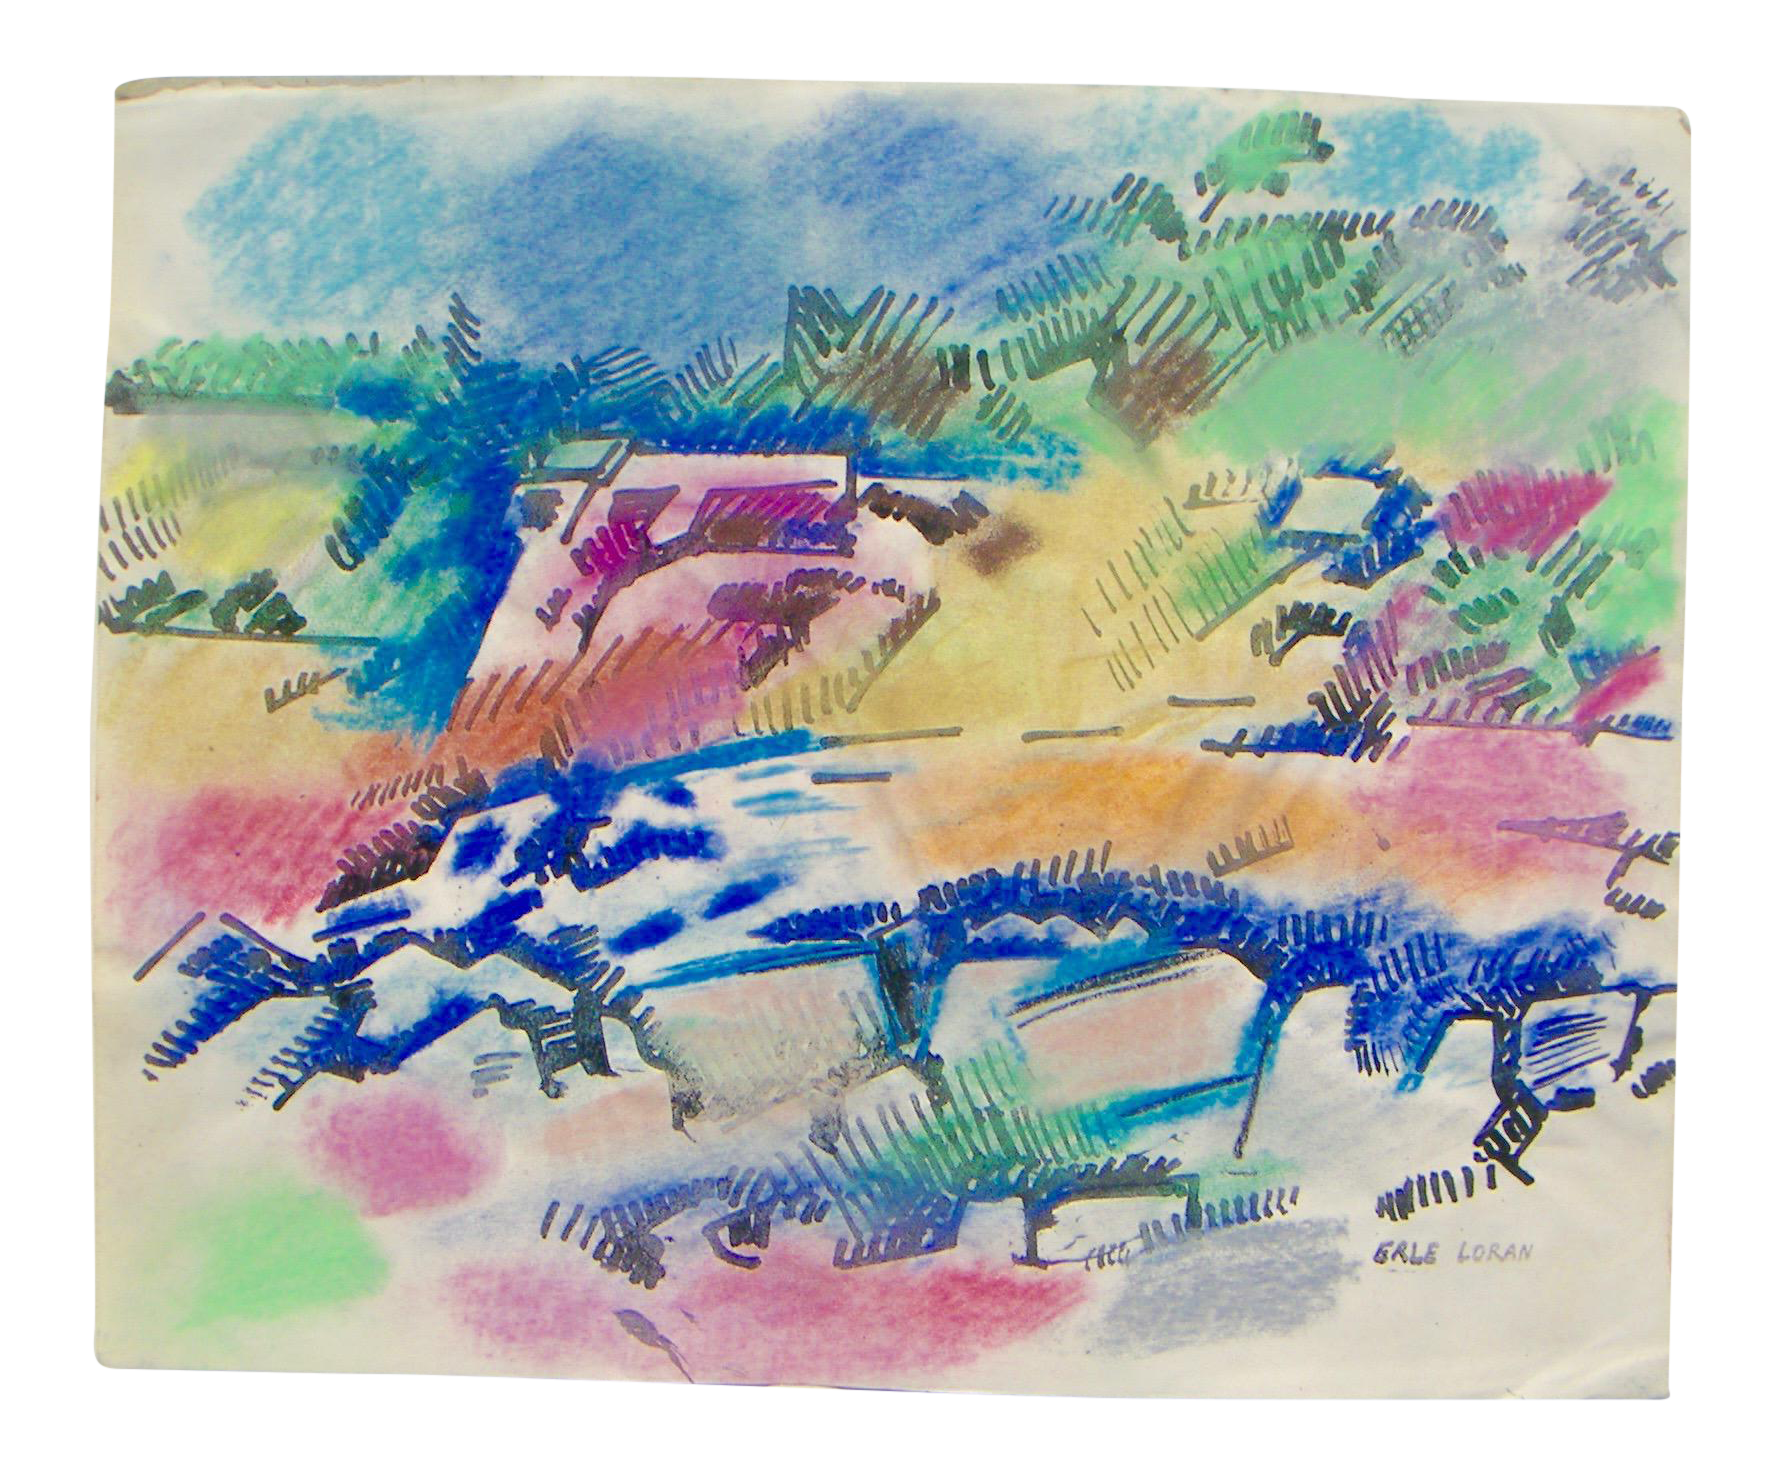 Hd drawing oil pastel. Erle loran abstract painting